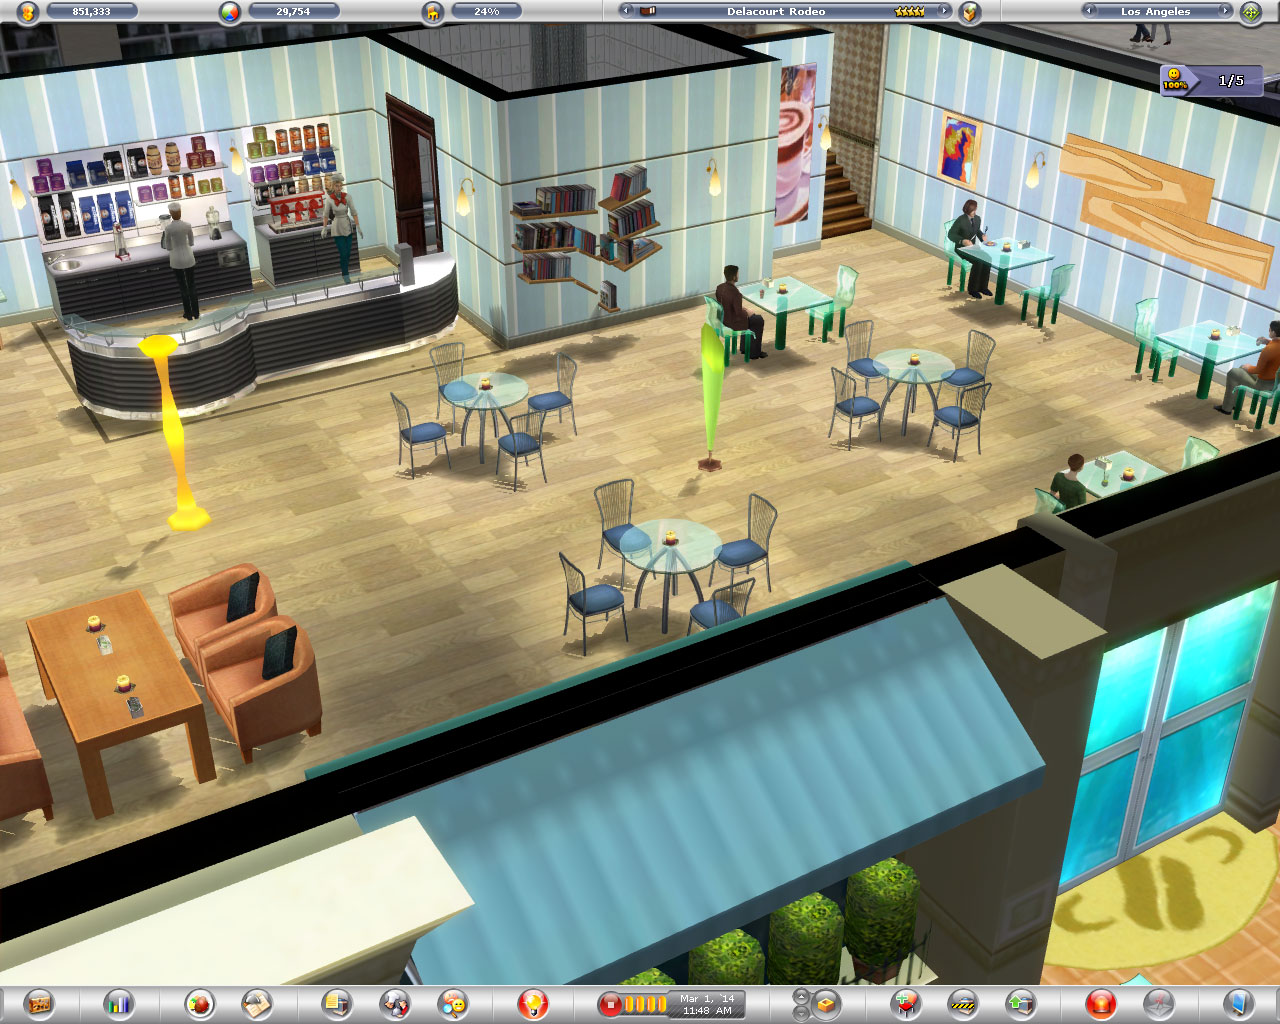 Restaurant empire game free download full version for pc